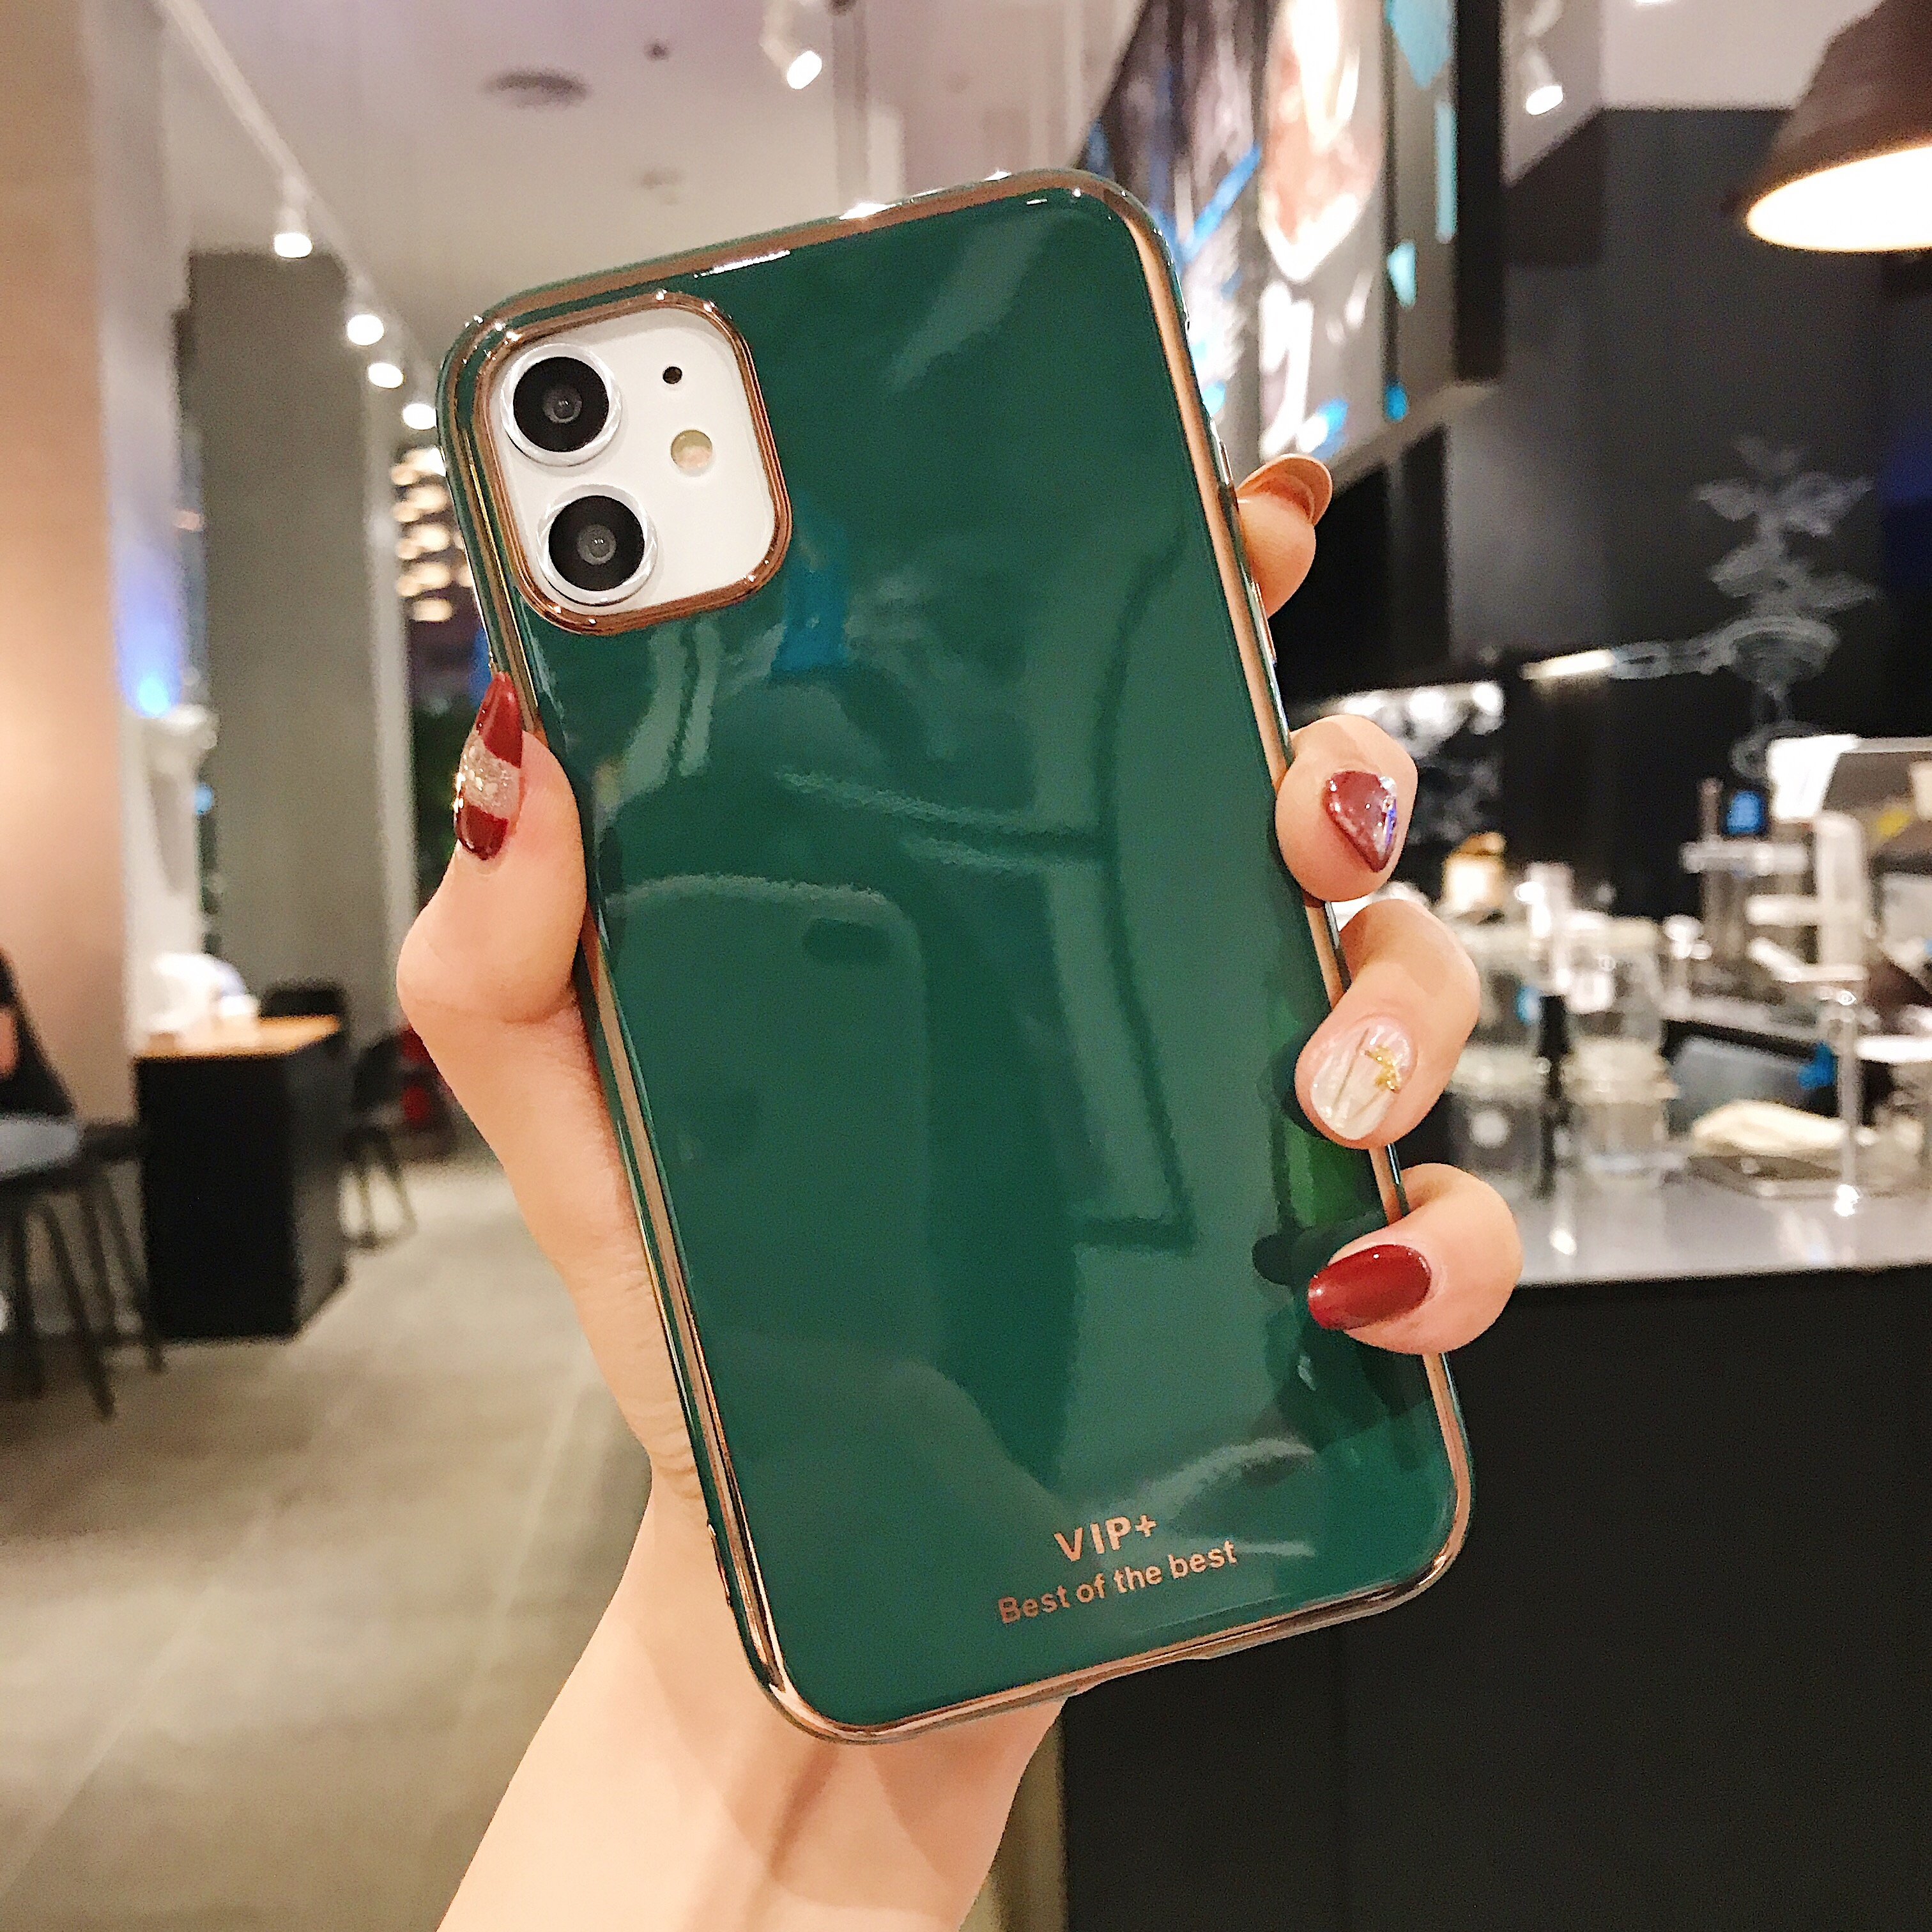 Hot Sell Plating Tpu Phone Cover For iPhone 11Pro Max /<strong>11</strong>/11Pro Protective Phone Case iPhone X 8 7plus 6s Case